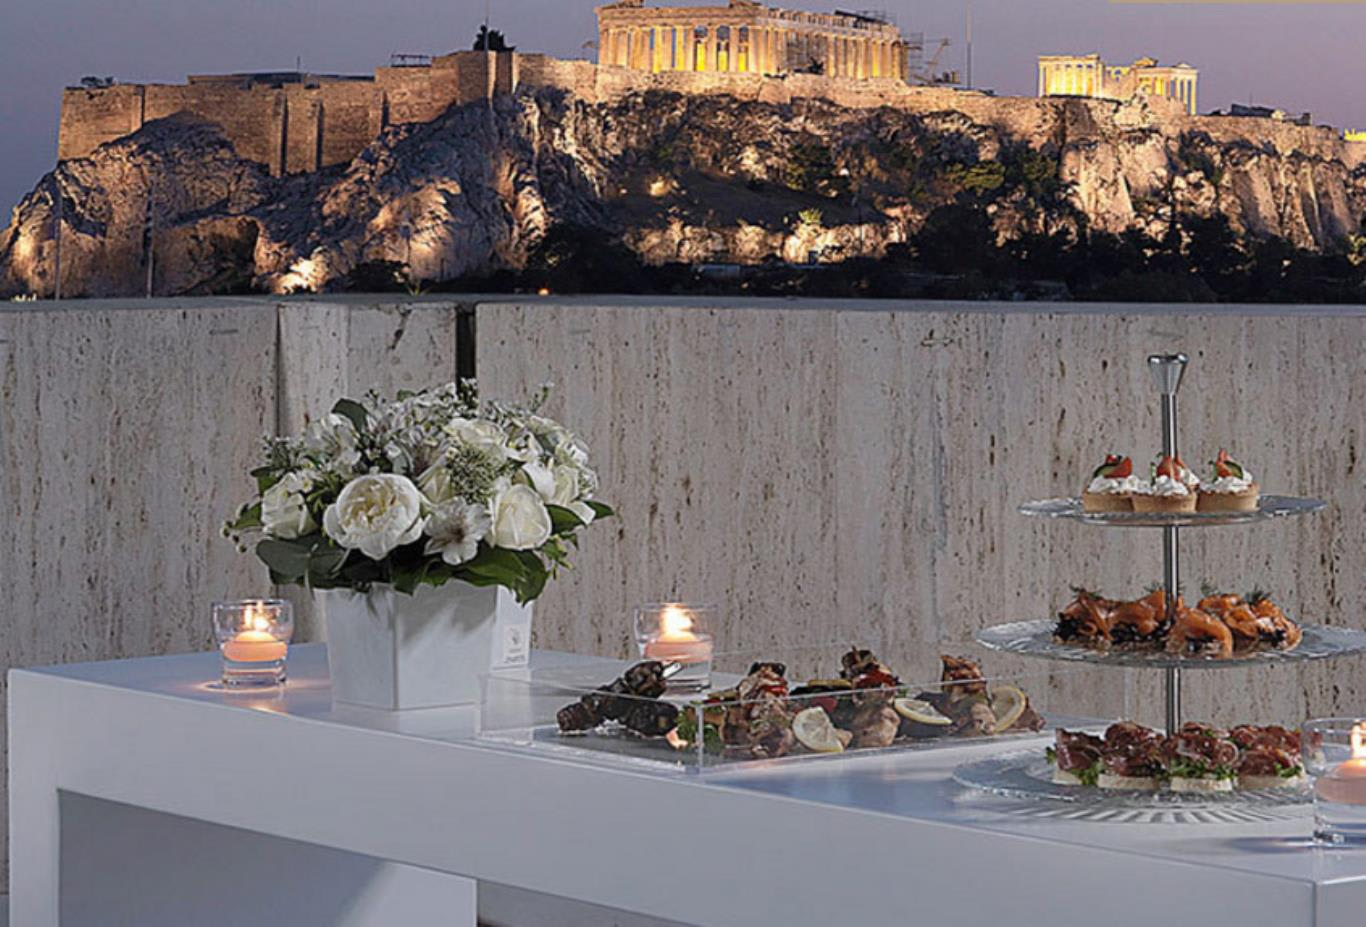 Hotel-dining-and-views